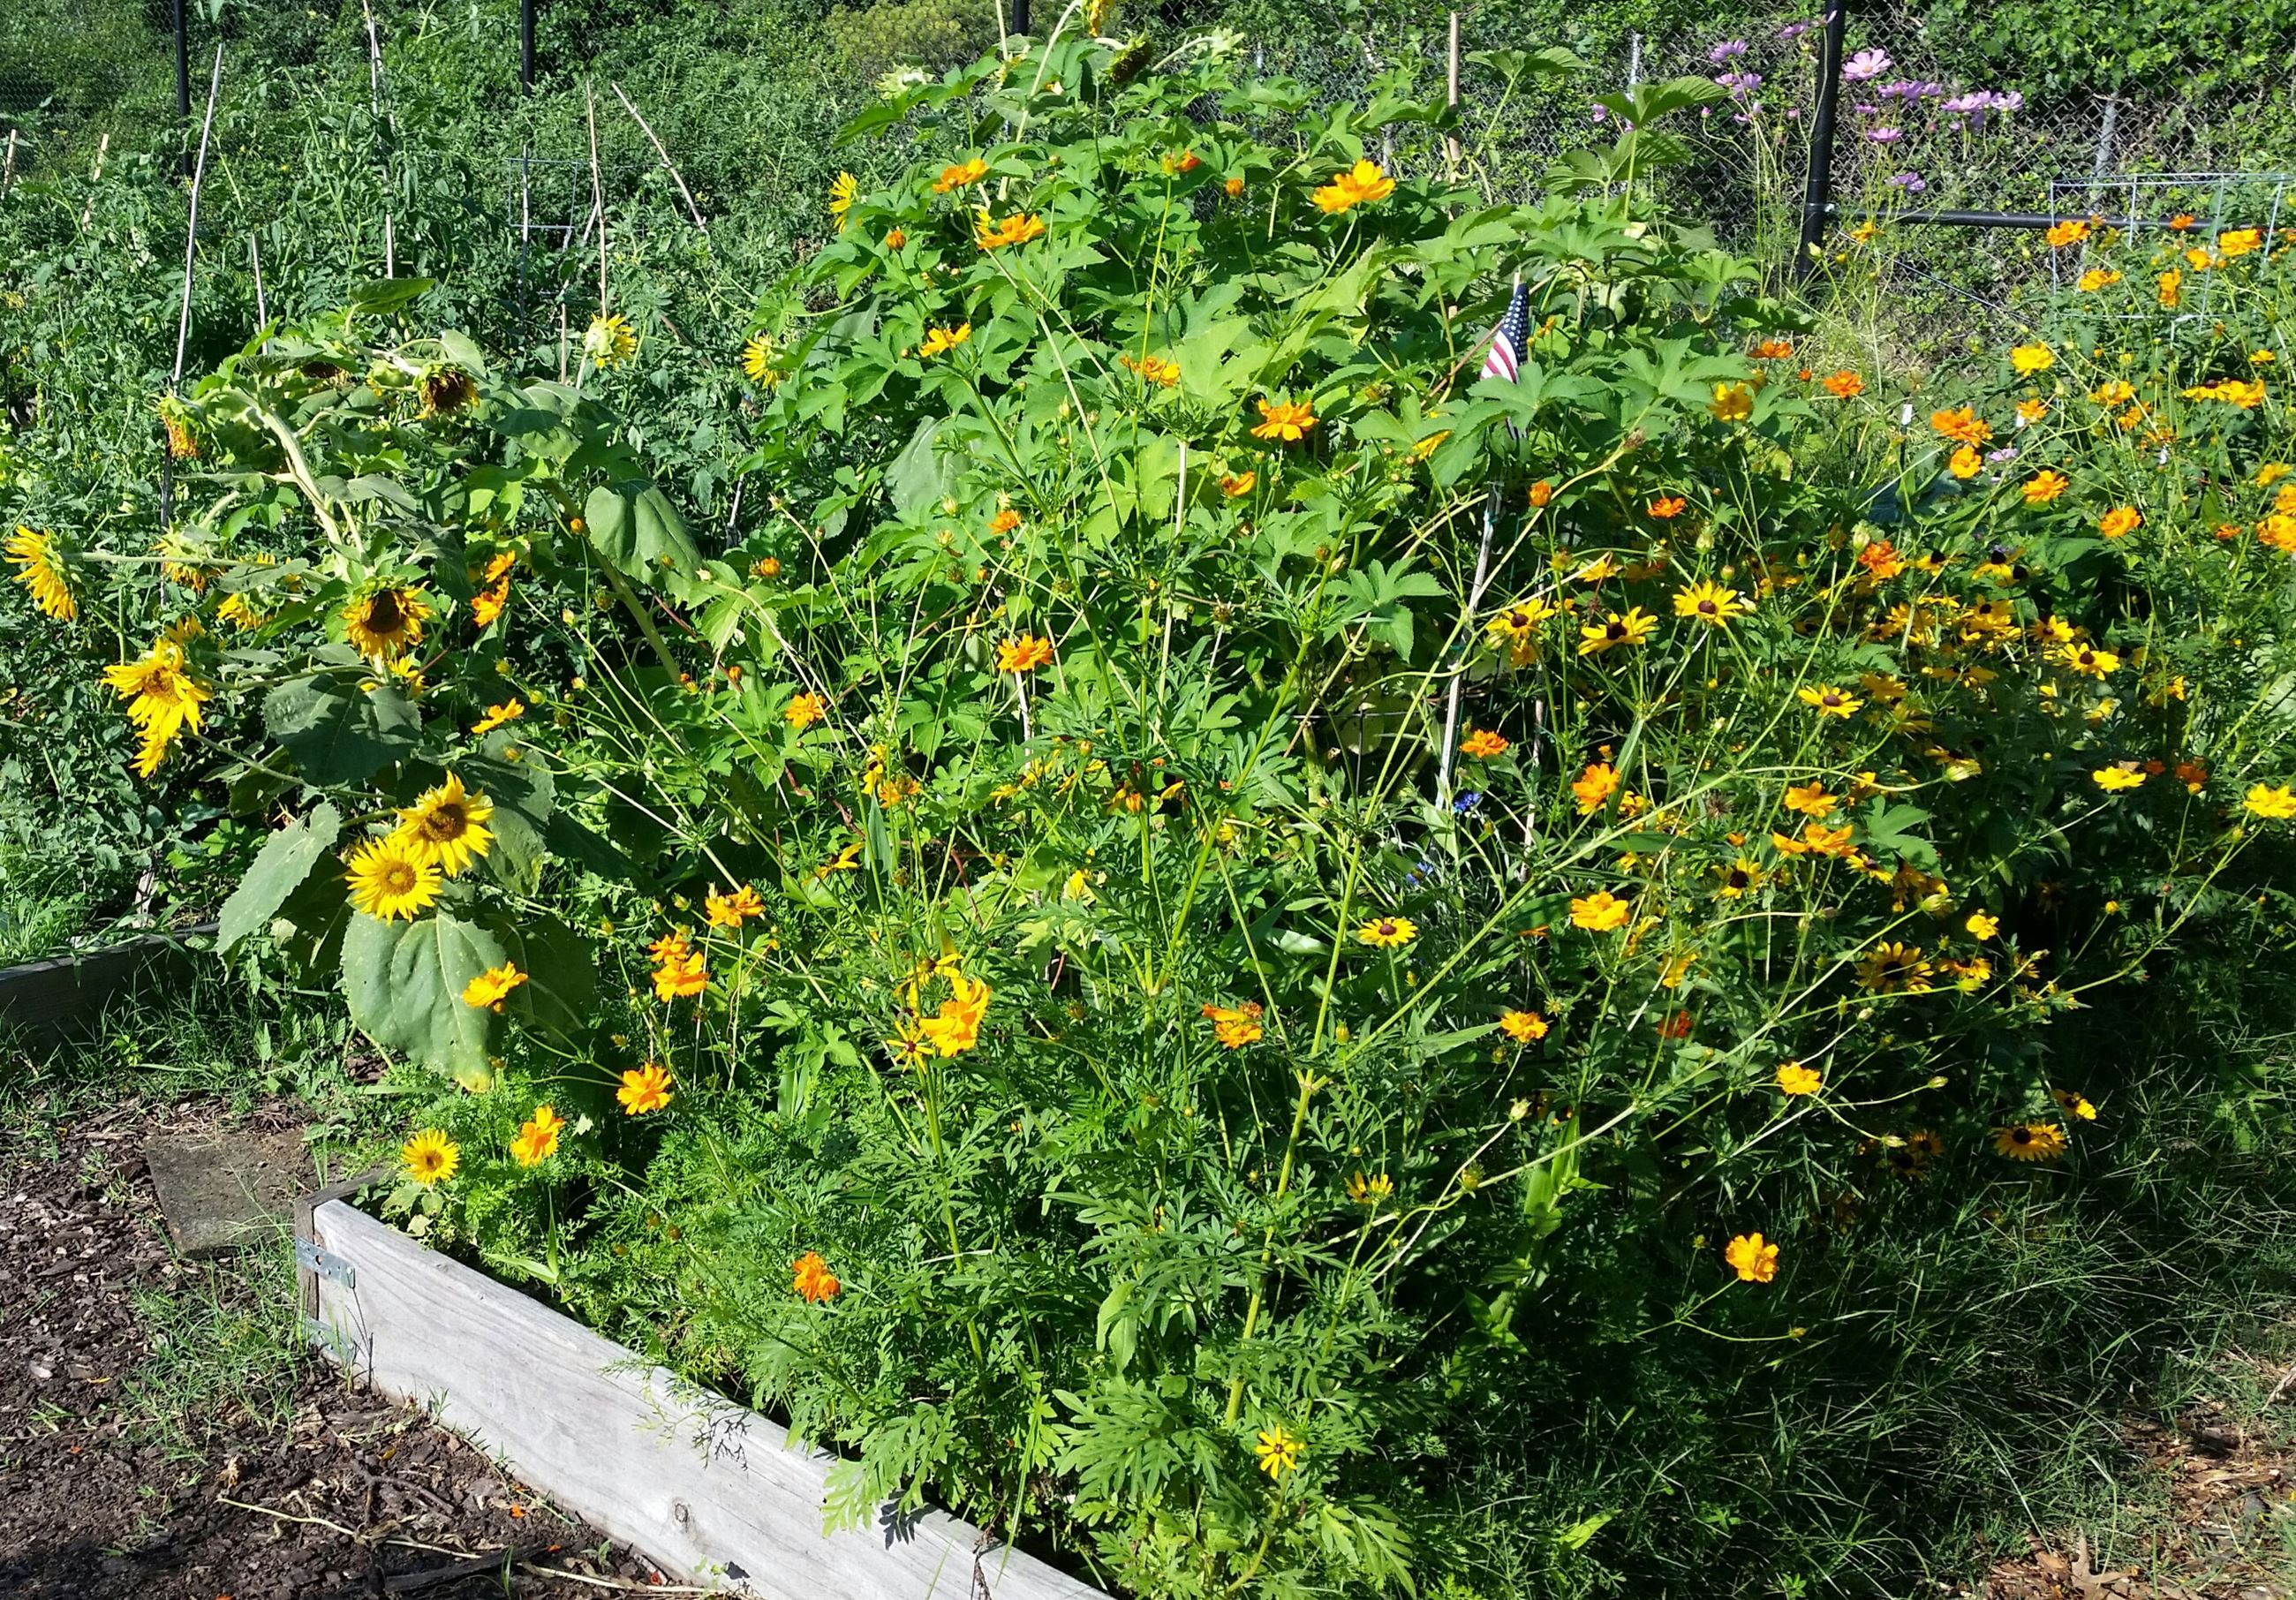 Community Garden Plots - flowers